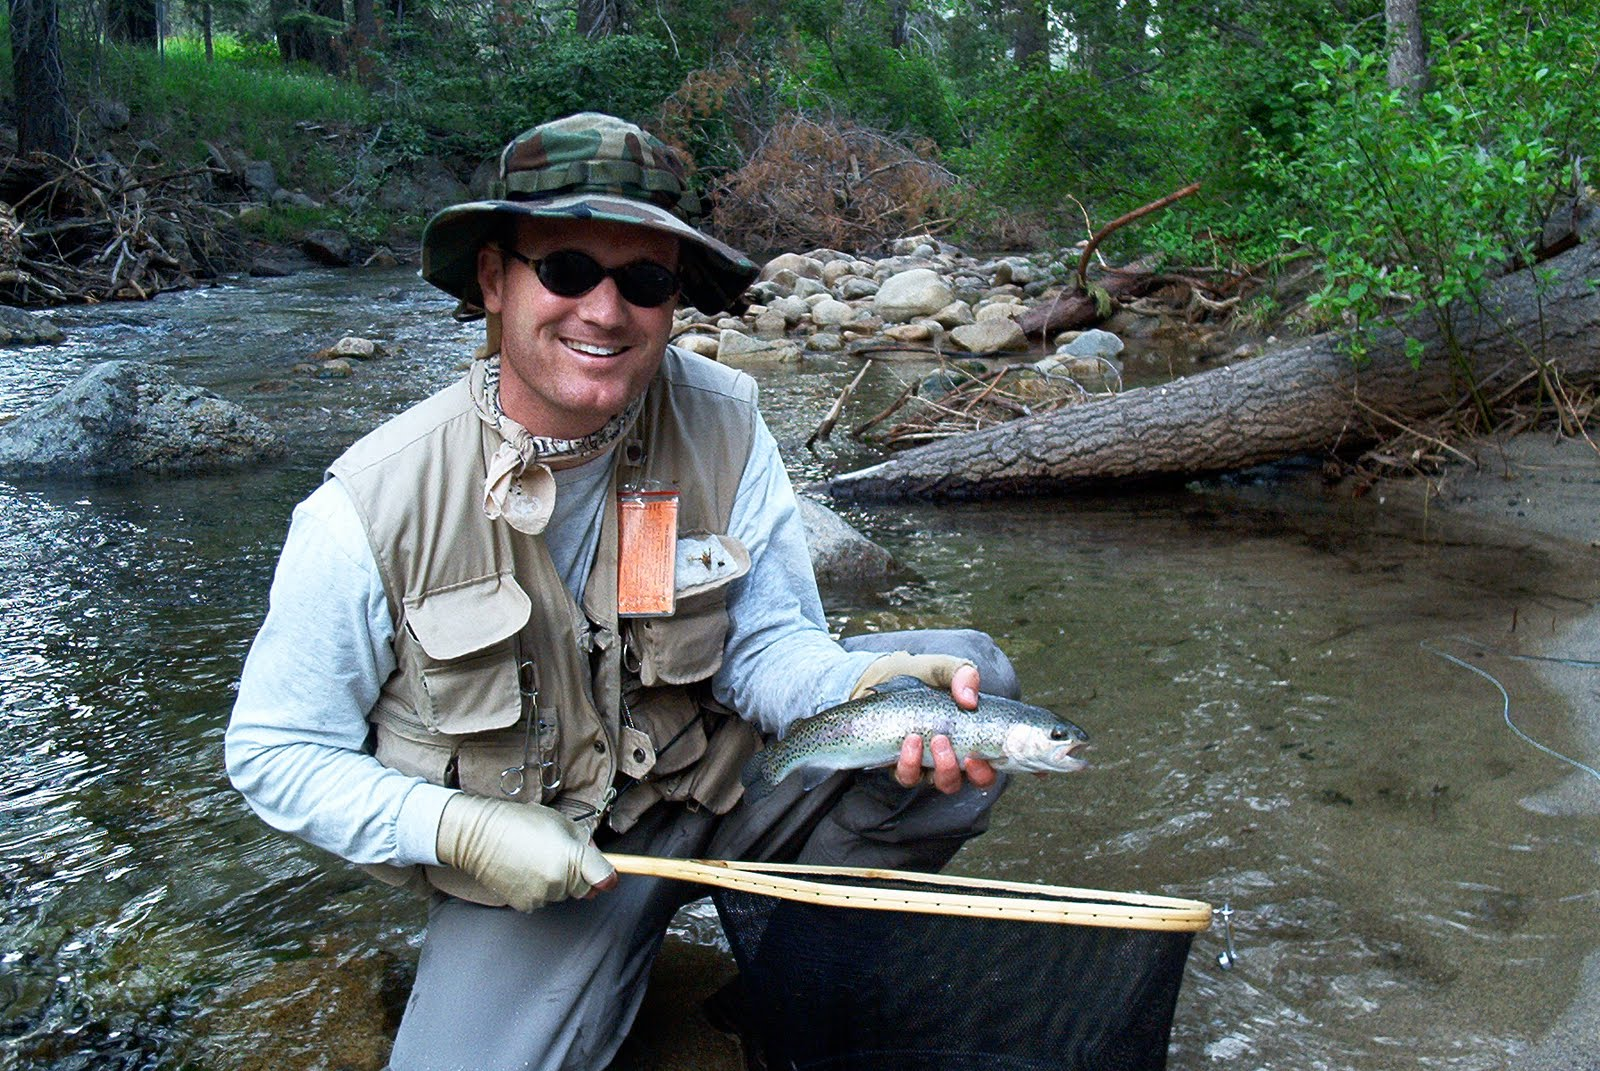 Virtual fly guides south fork of the american river ca for American river fishing